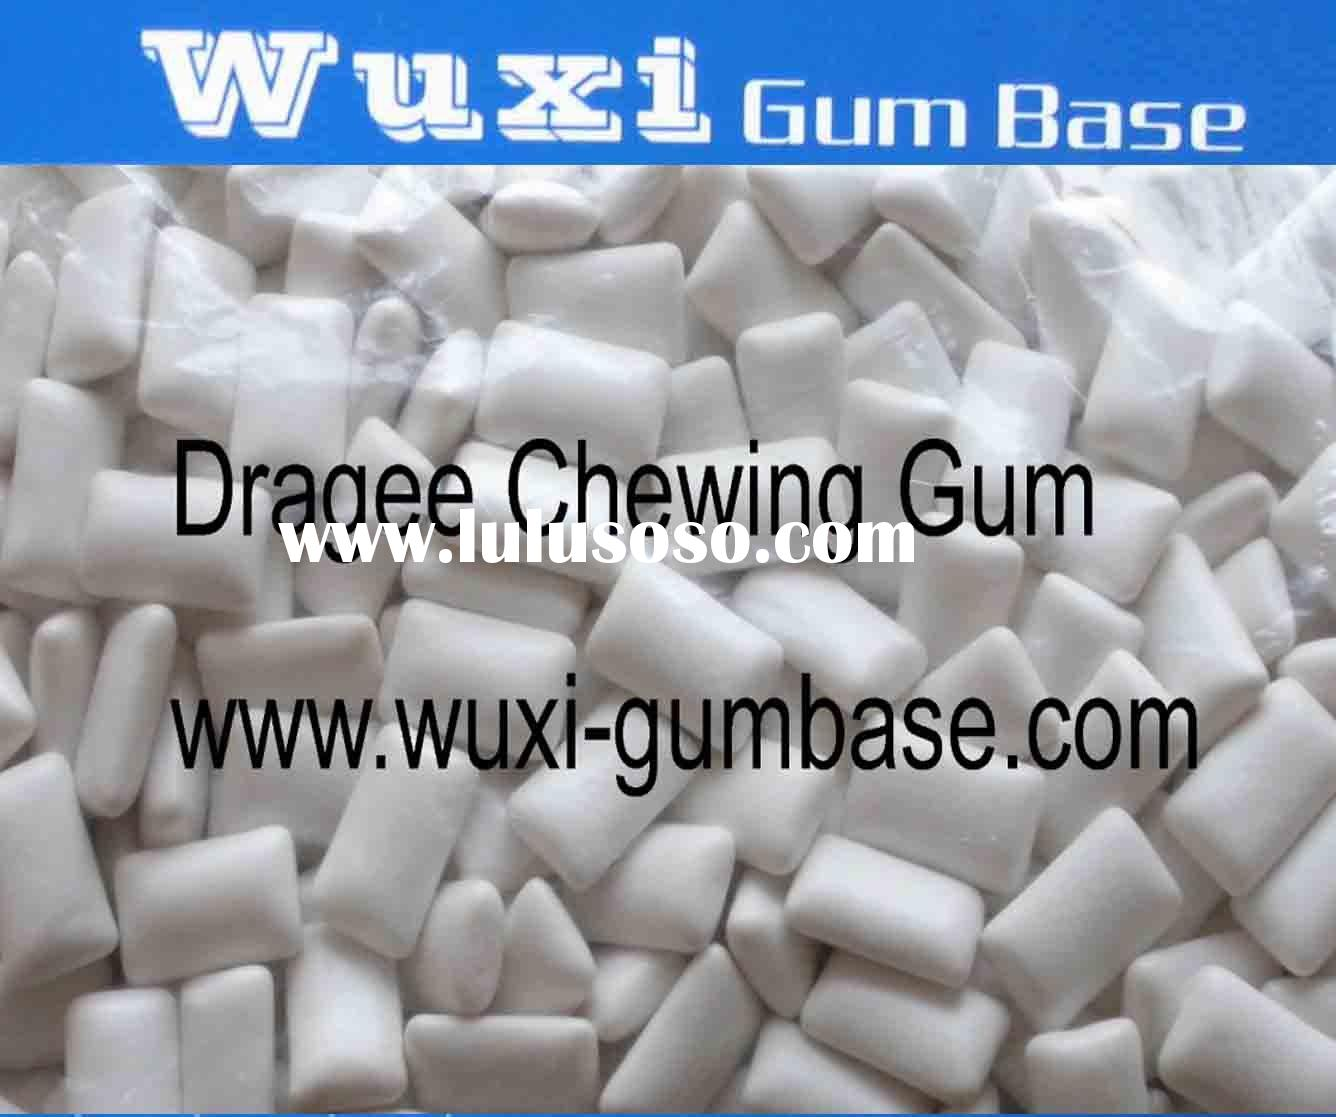 Sugarfree Xylitol chewing gum in bulk